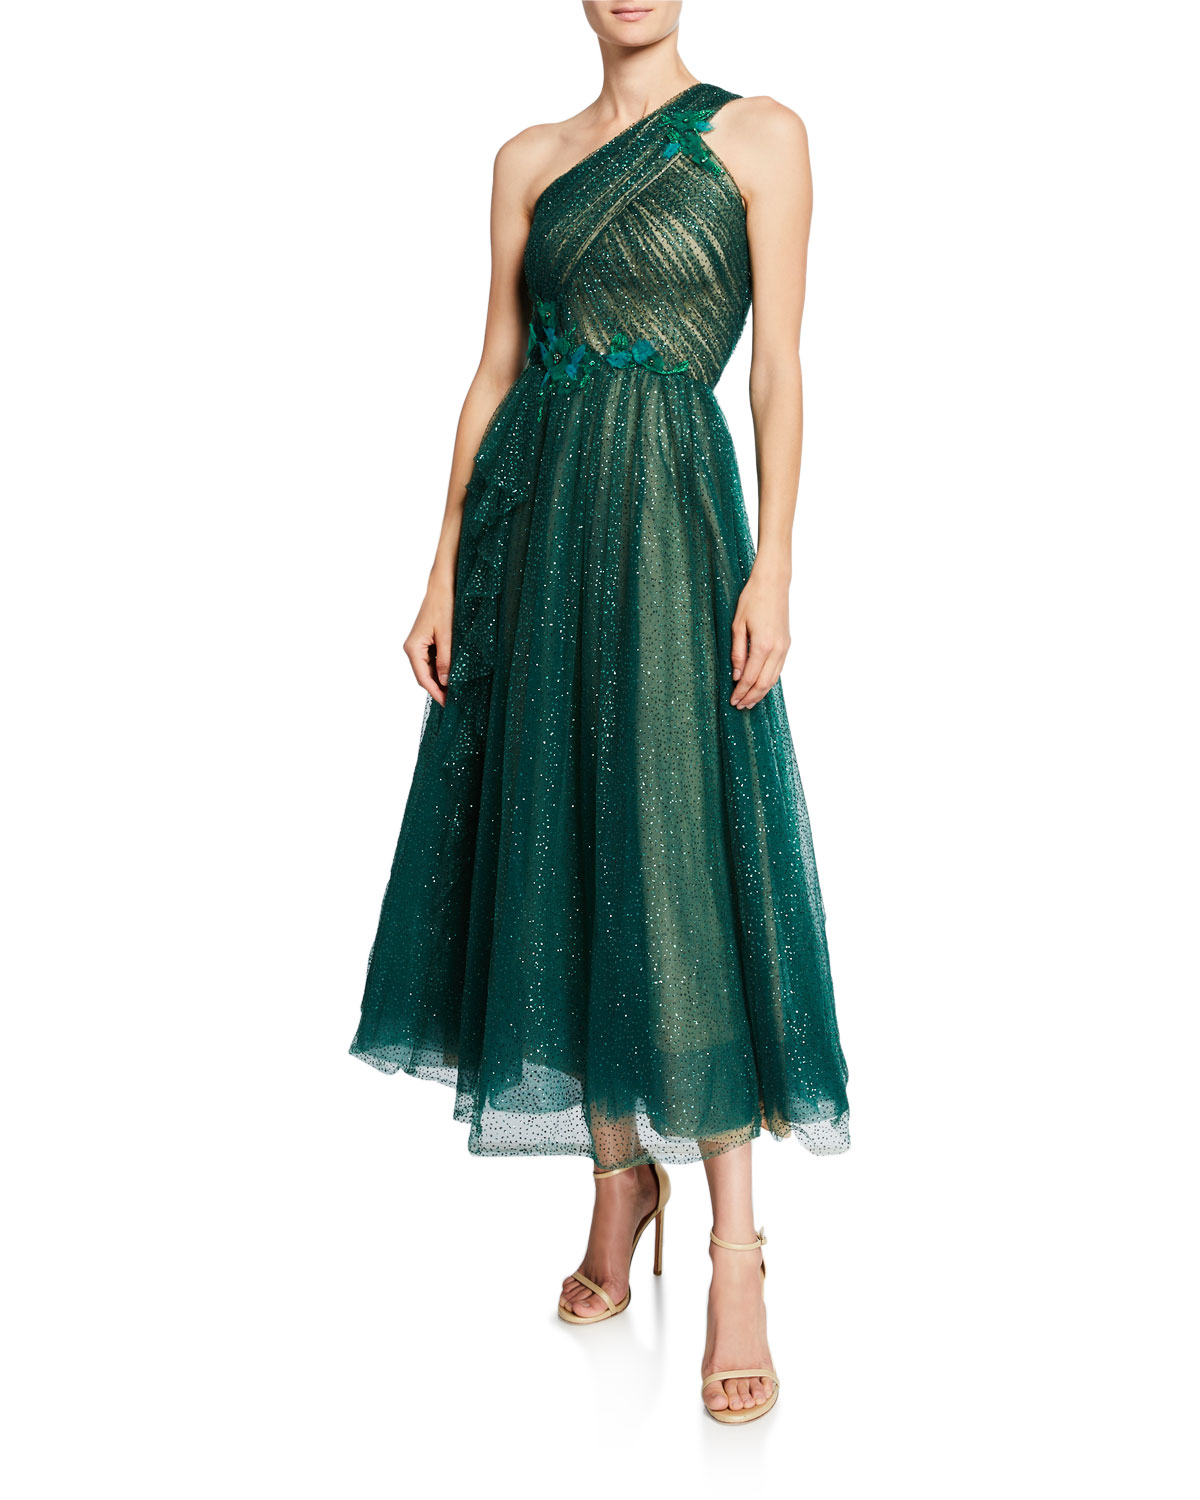 Marchesa Notte Tops ONE-SHOULDER GLITTERY TULLE MIDI GOWN W/ BEADED FLORAL APPLIQUES